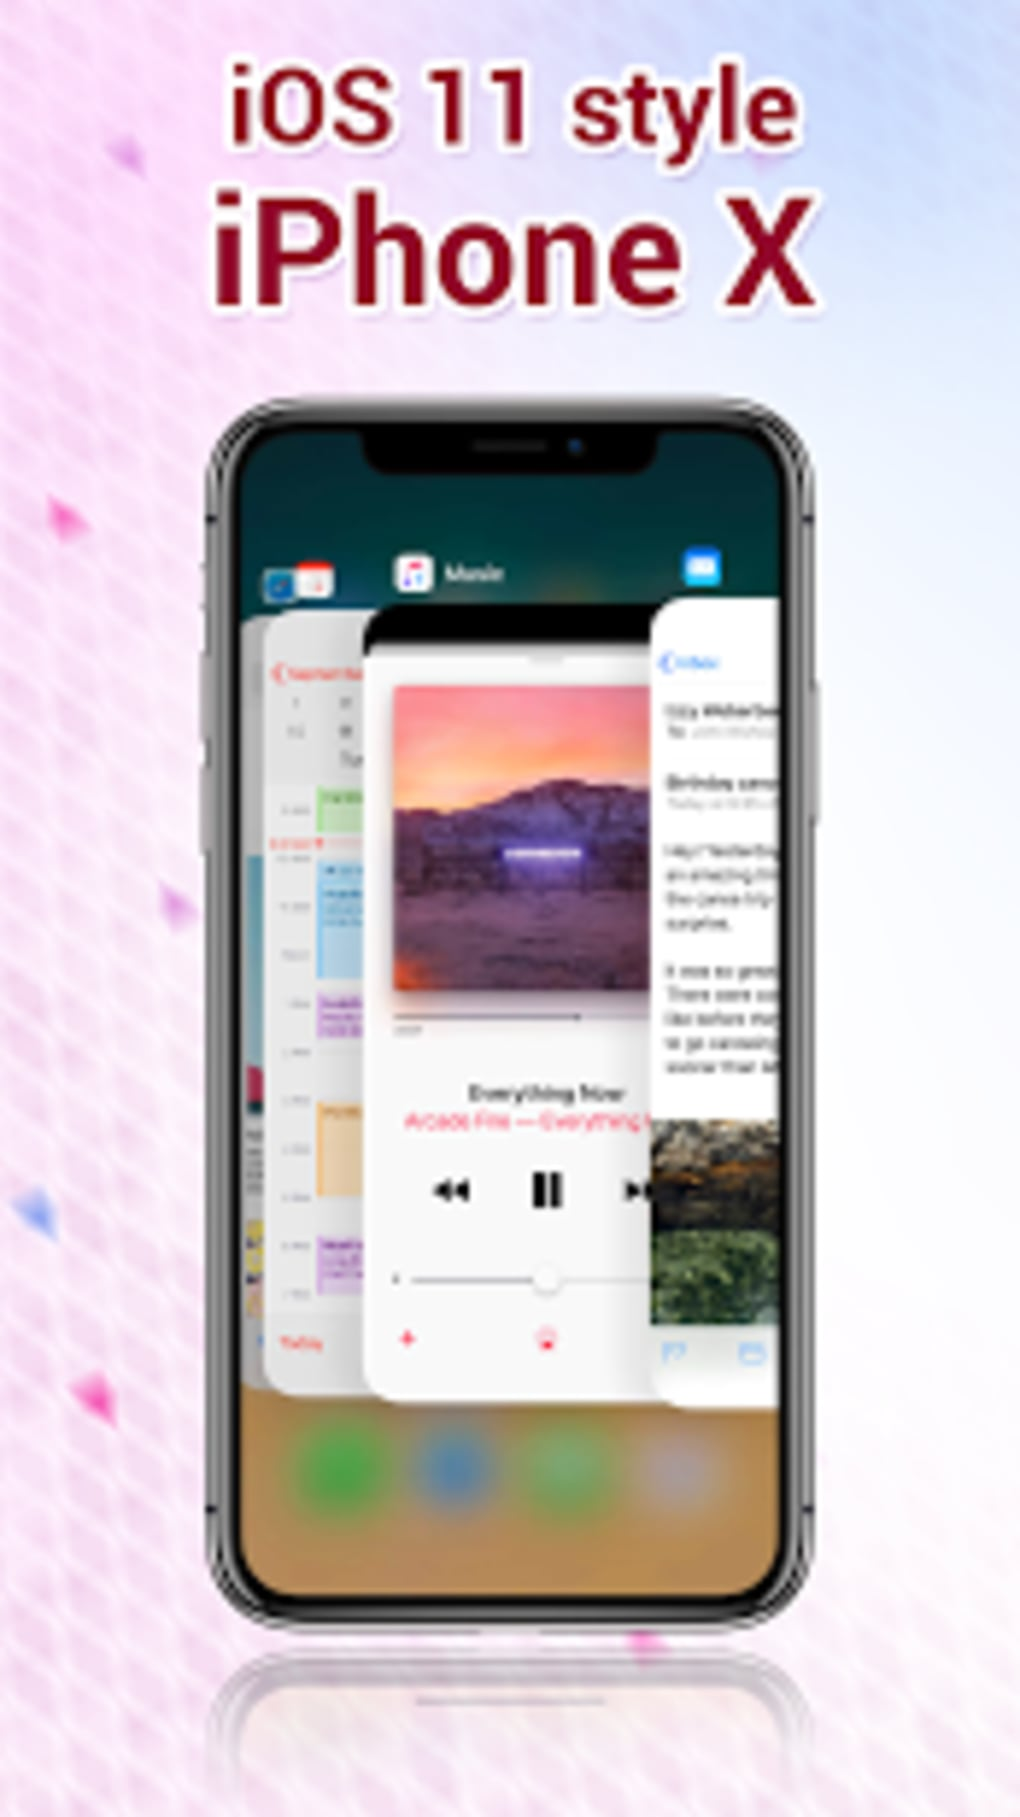 Phone X Launcher OS 11 iLauncher  Control Center